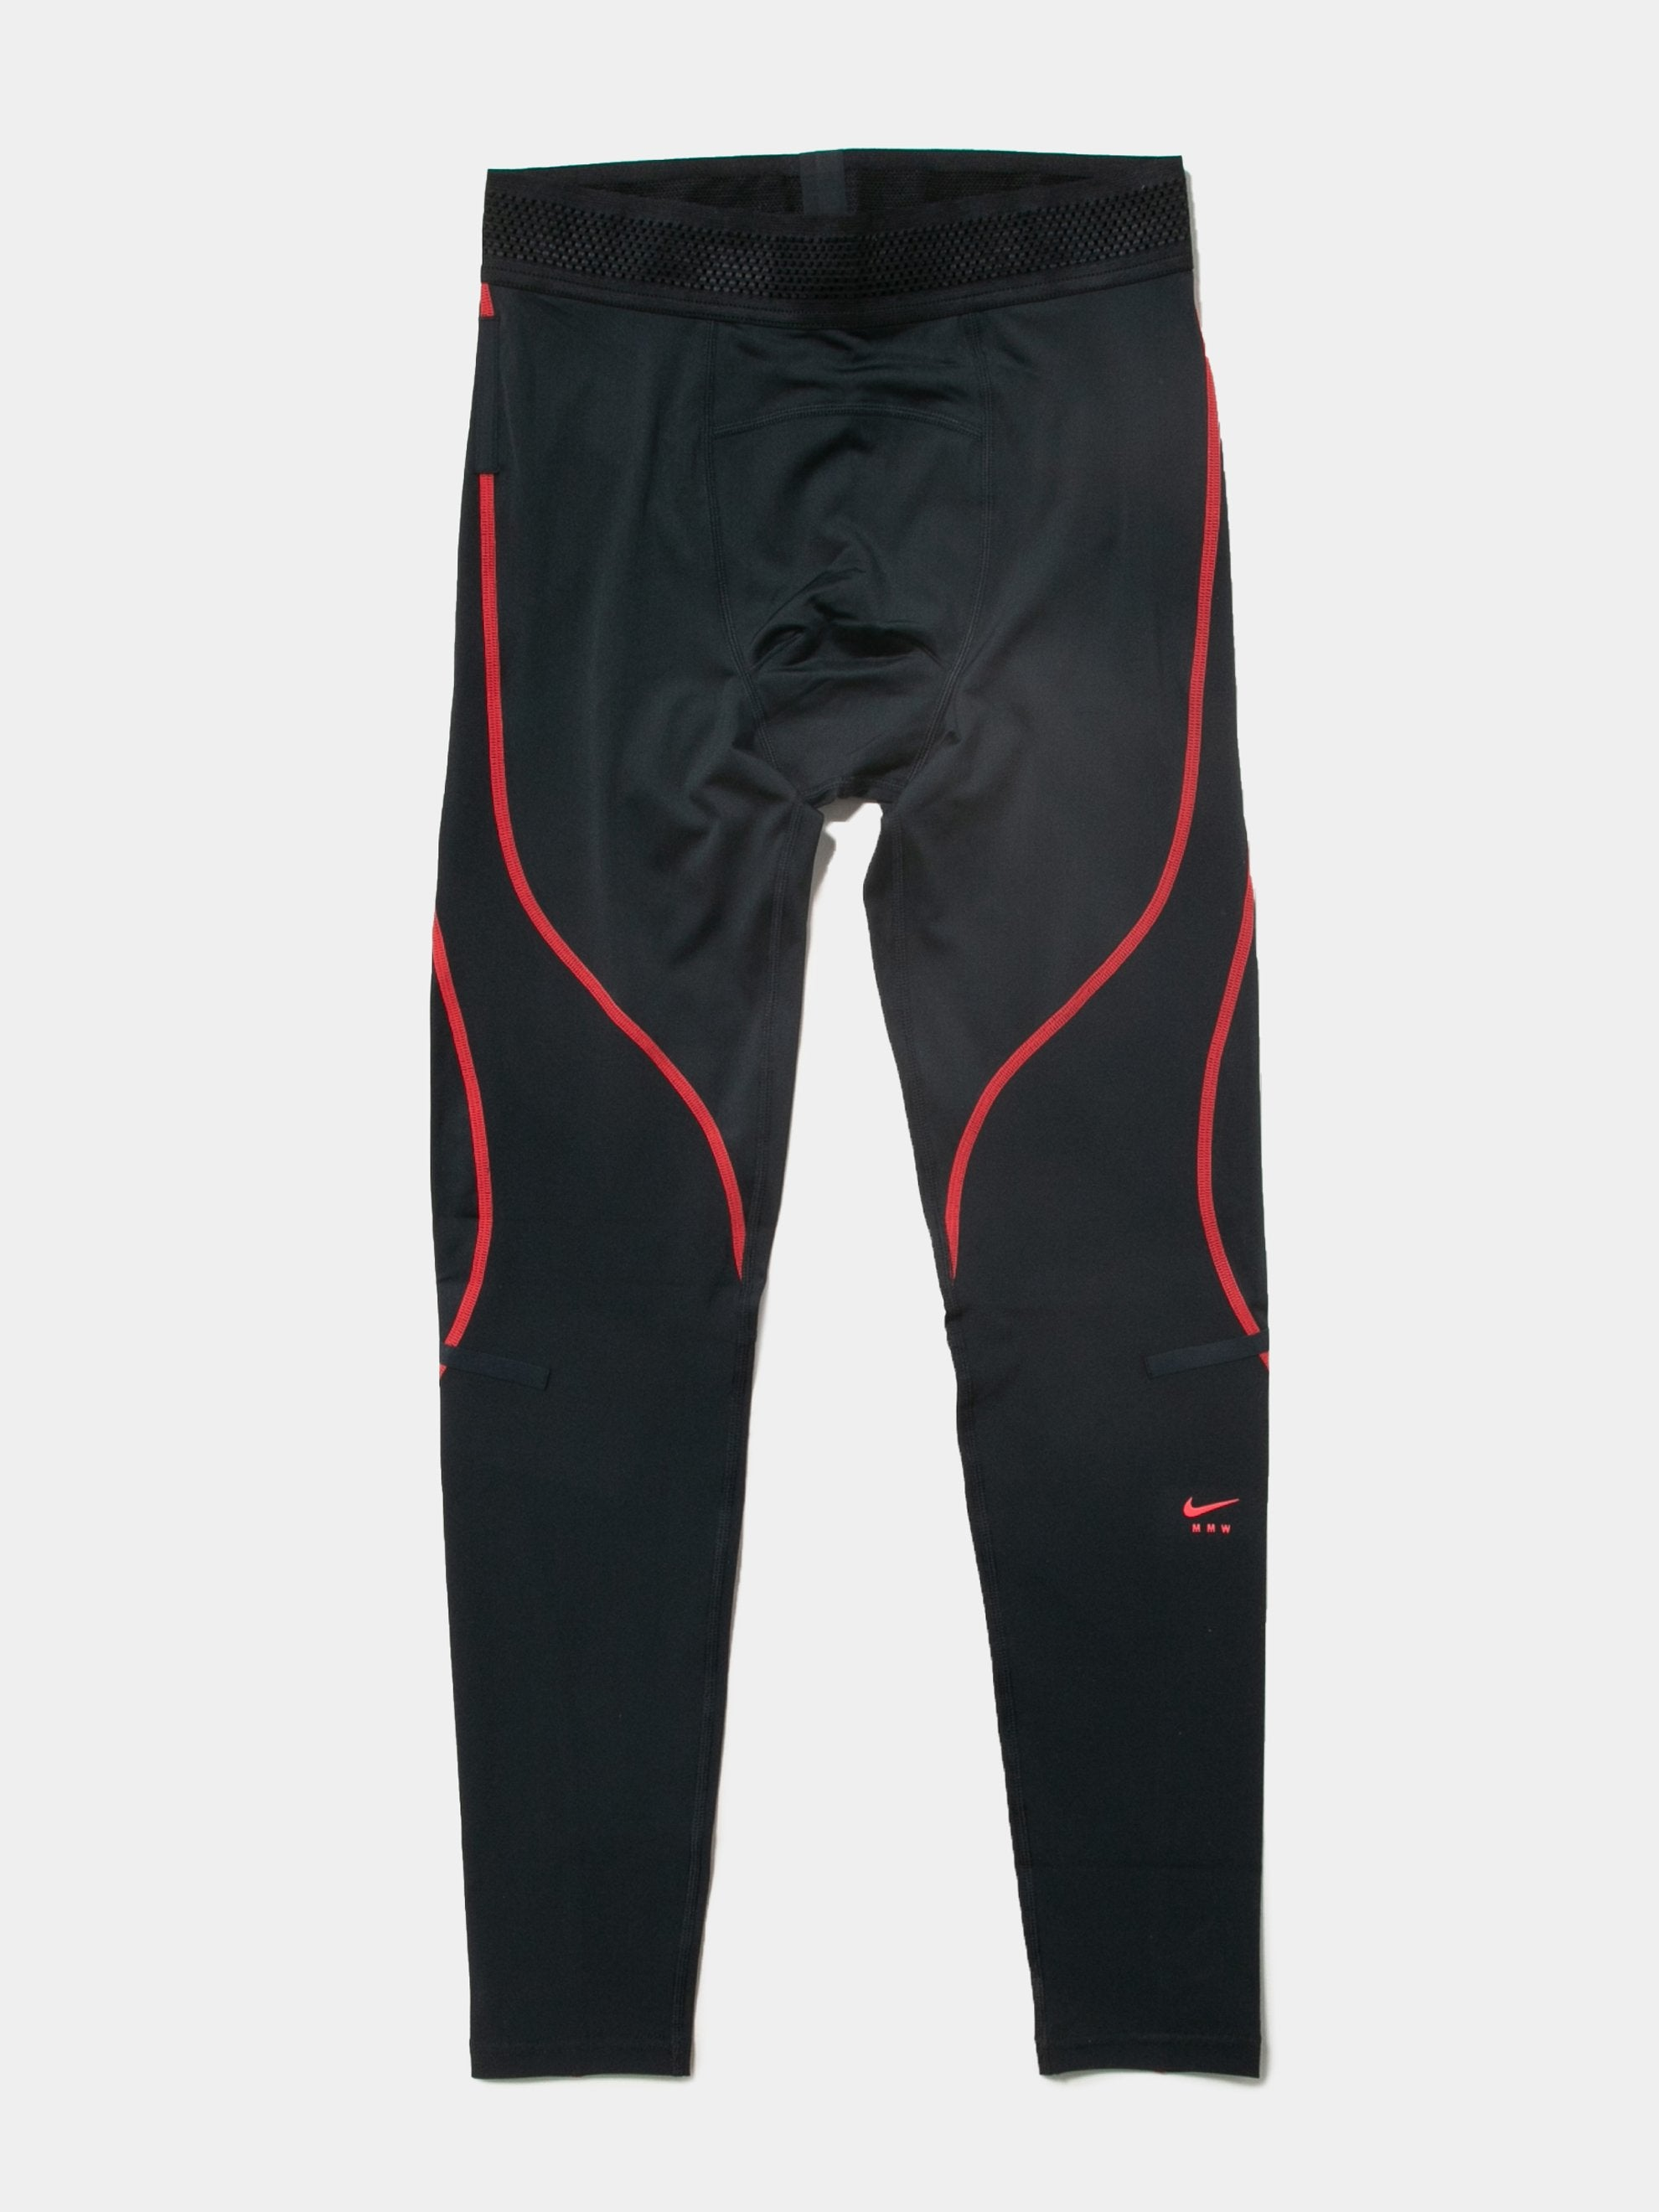 Nike x MMW Hybrid Tights